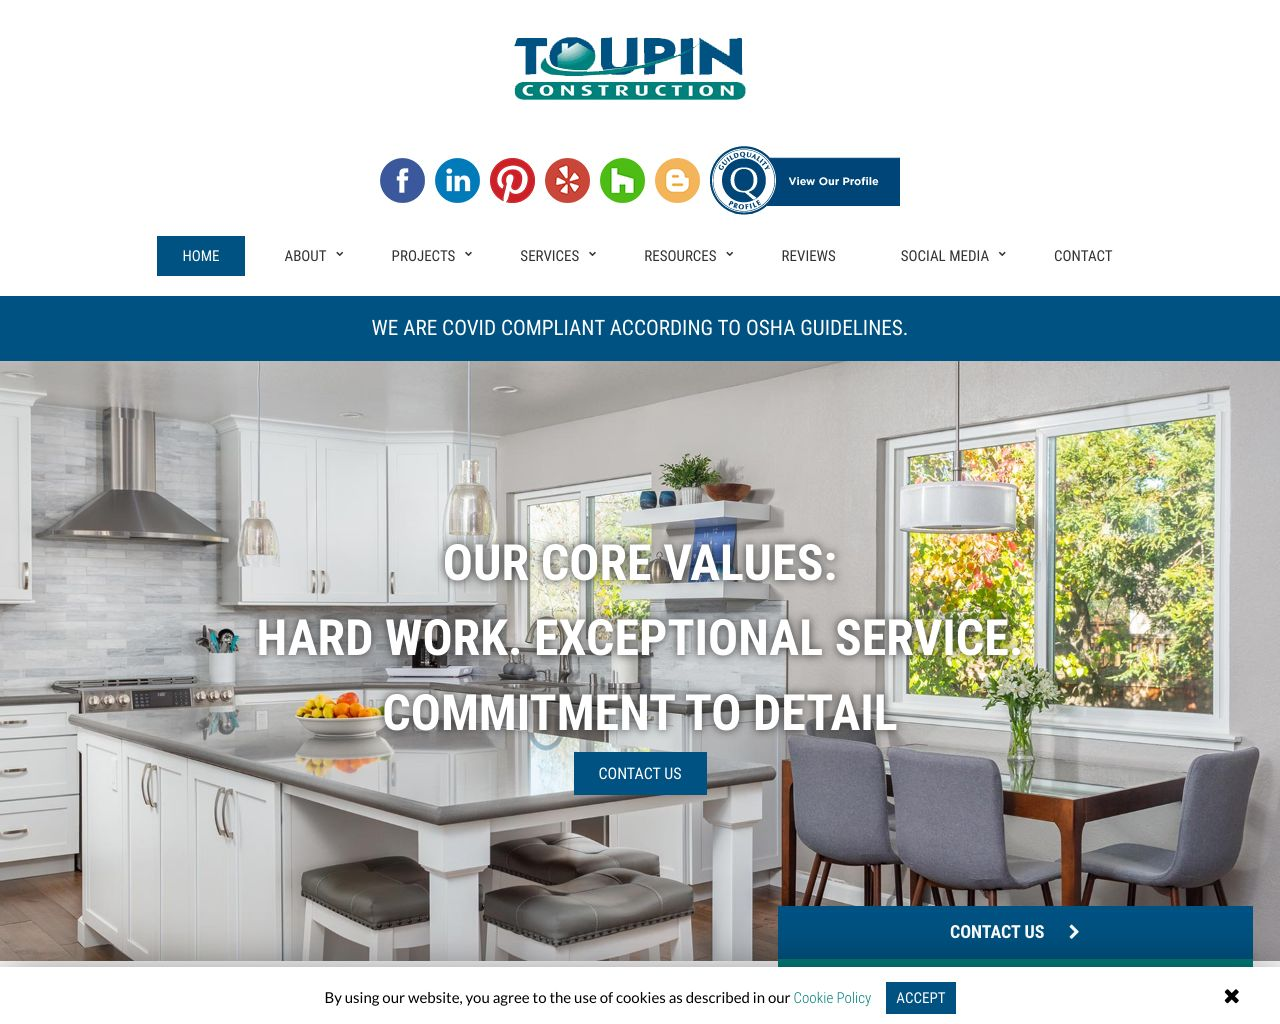 Toupin construction remodeling contractor diamond certified toupinconstruction malvernweather Image collections